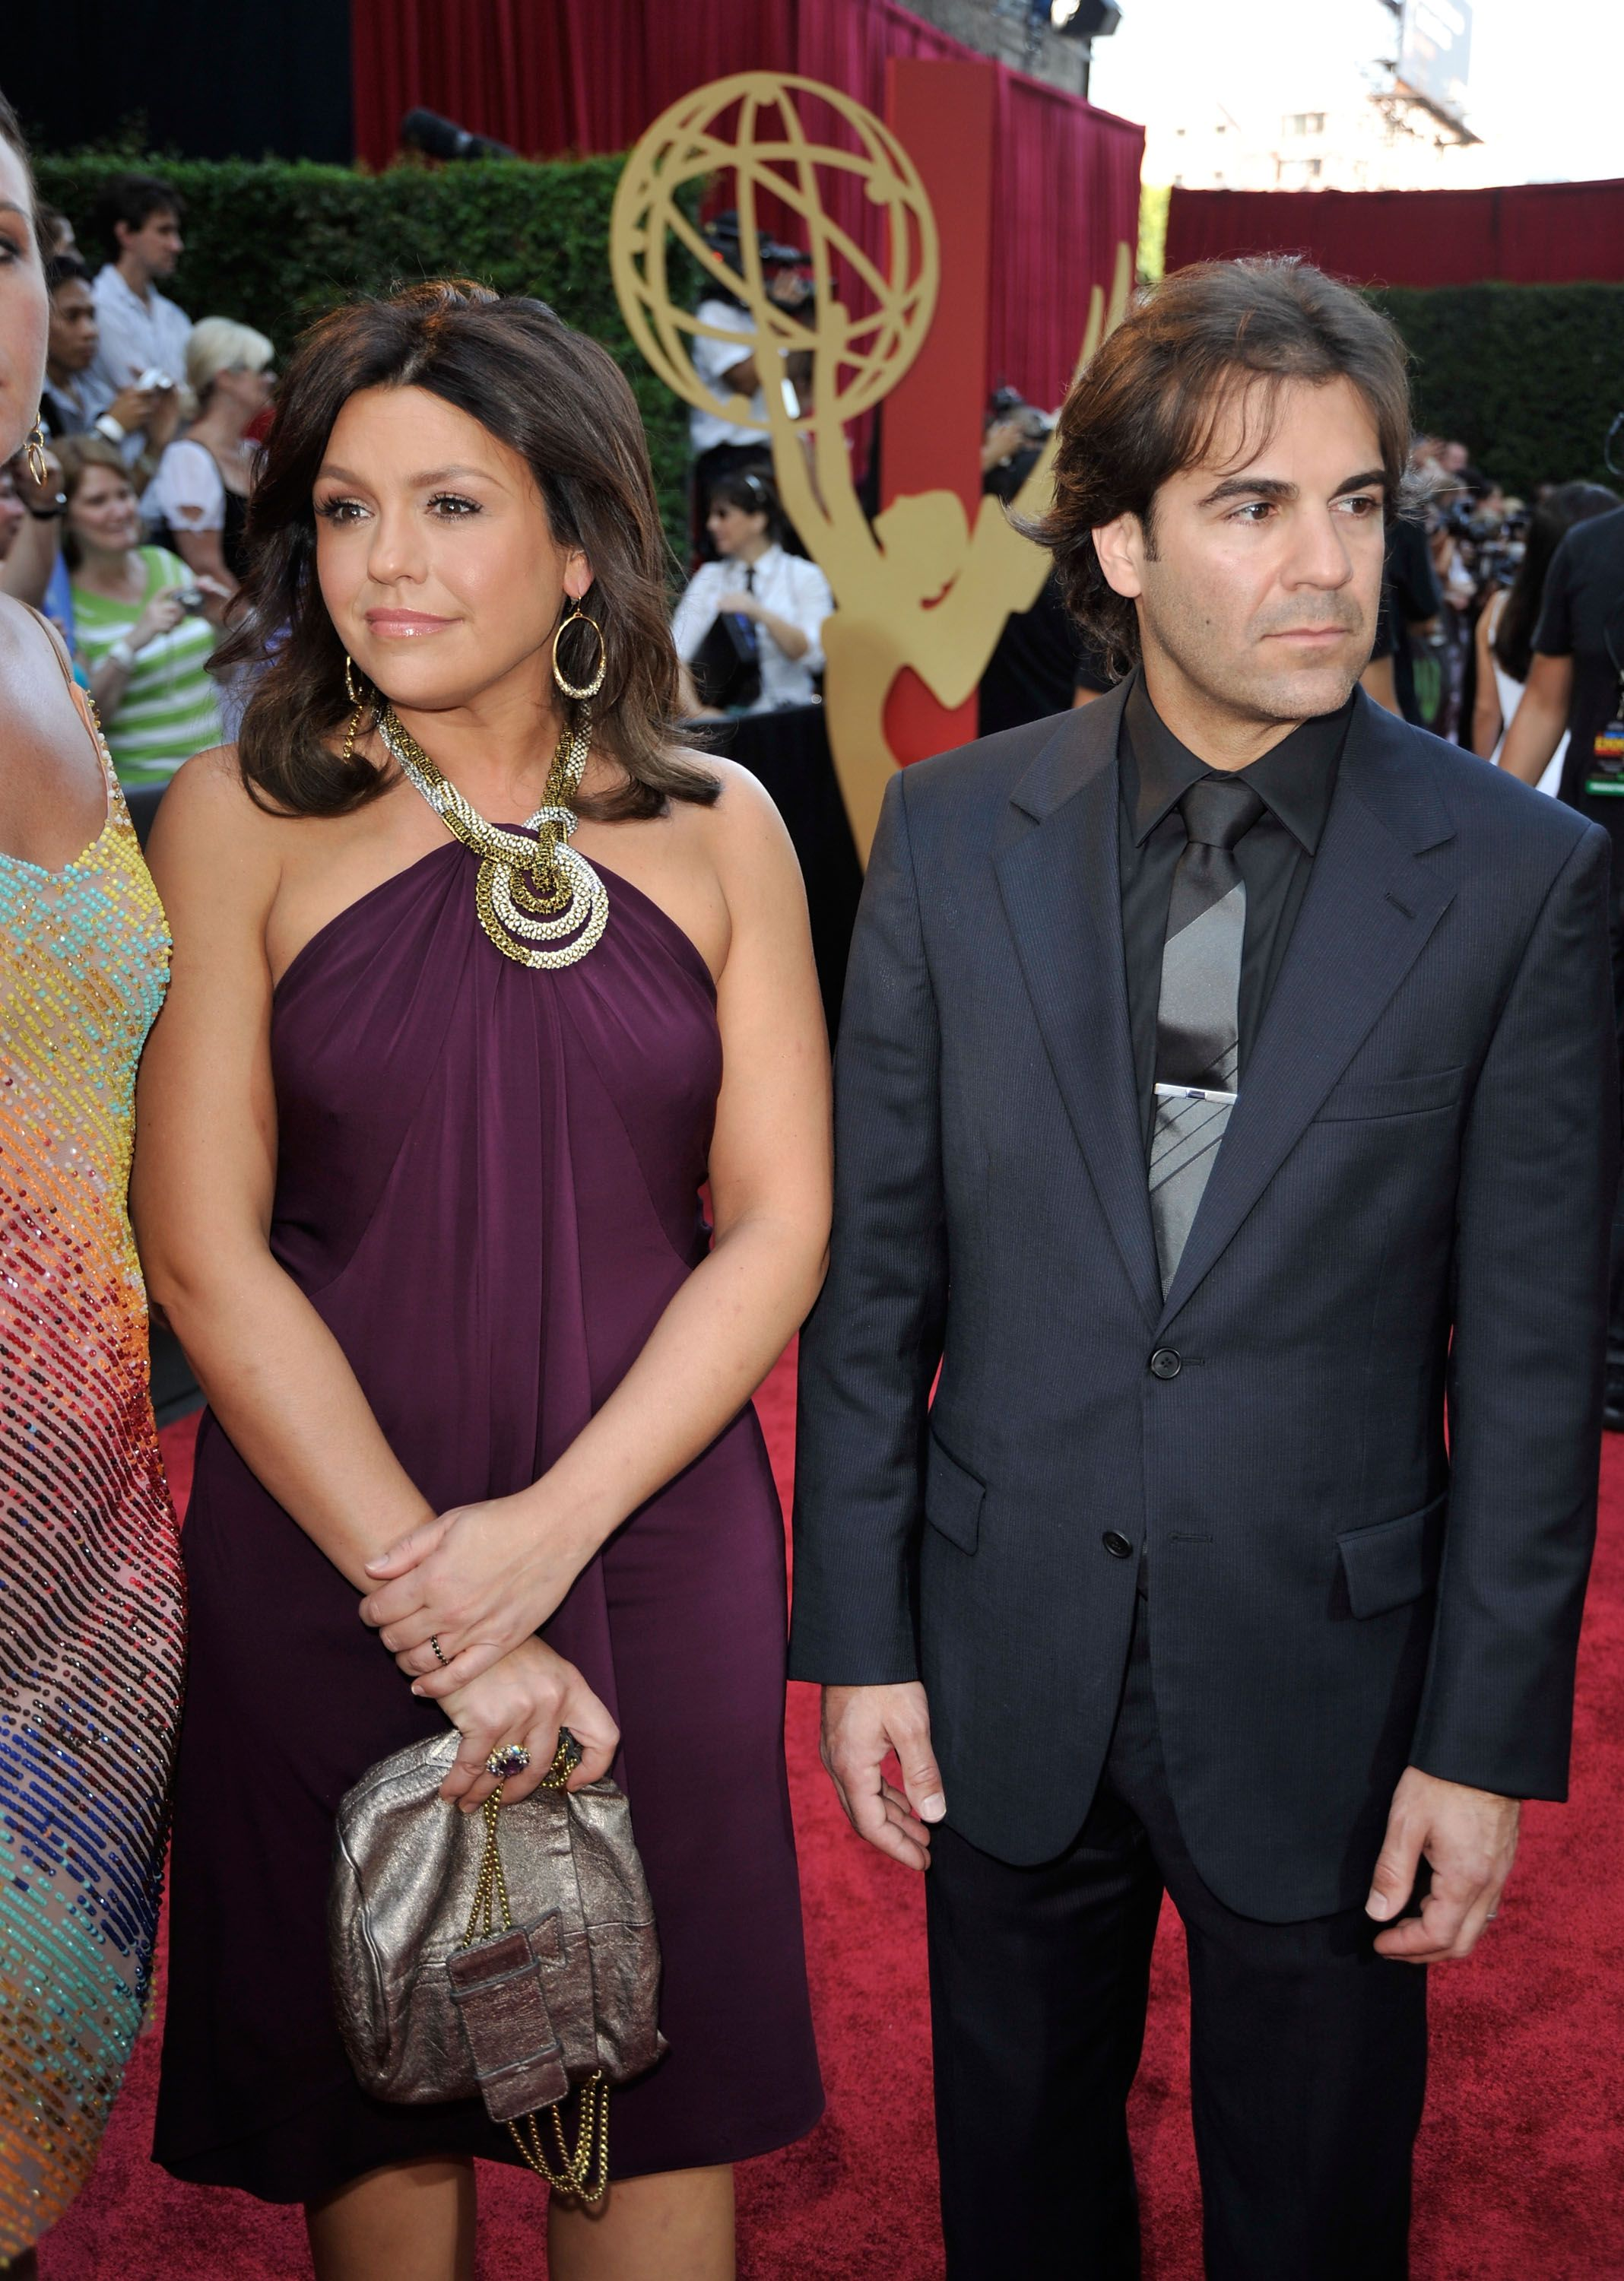 Rachael Ray and John Cusimano at the 36th Annual Daytime Emmy Awards in 2009 in Los Angeles | Source: Getty Images